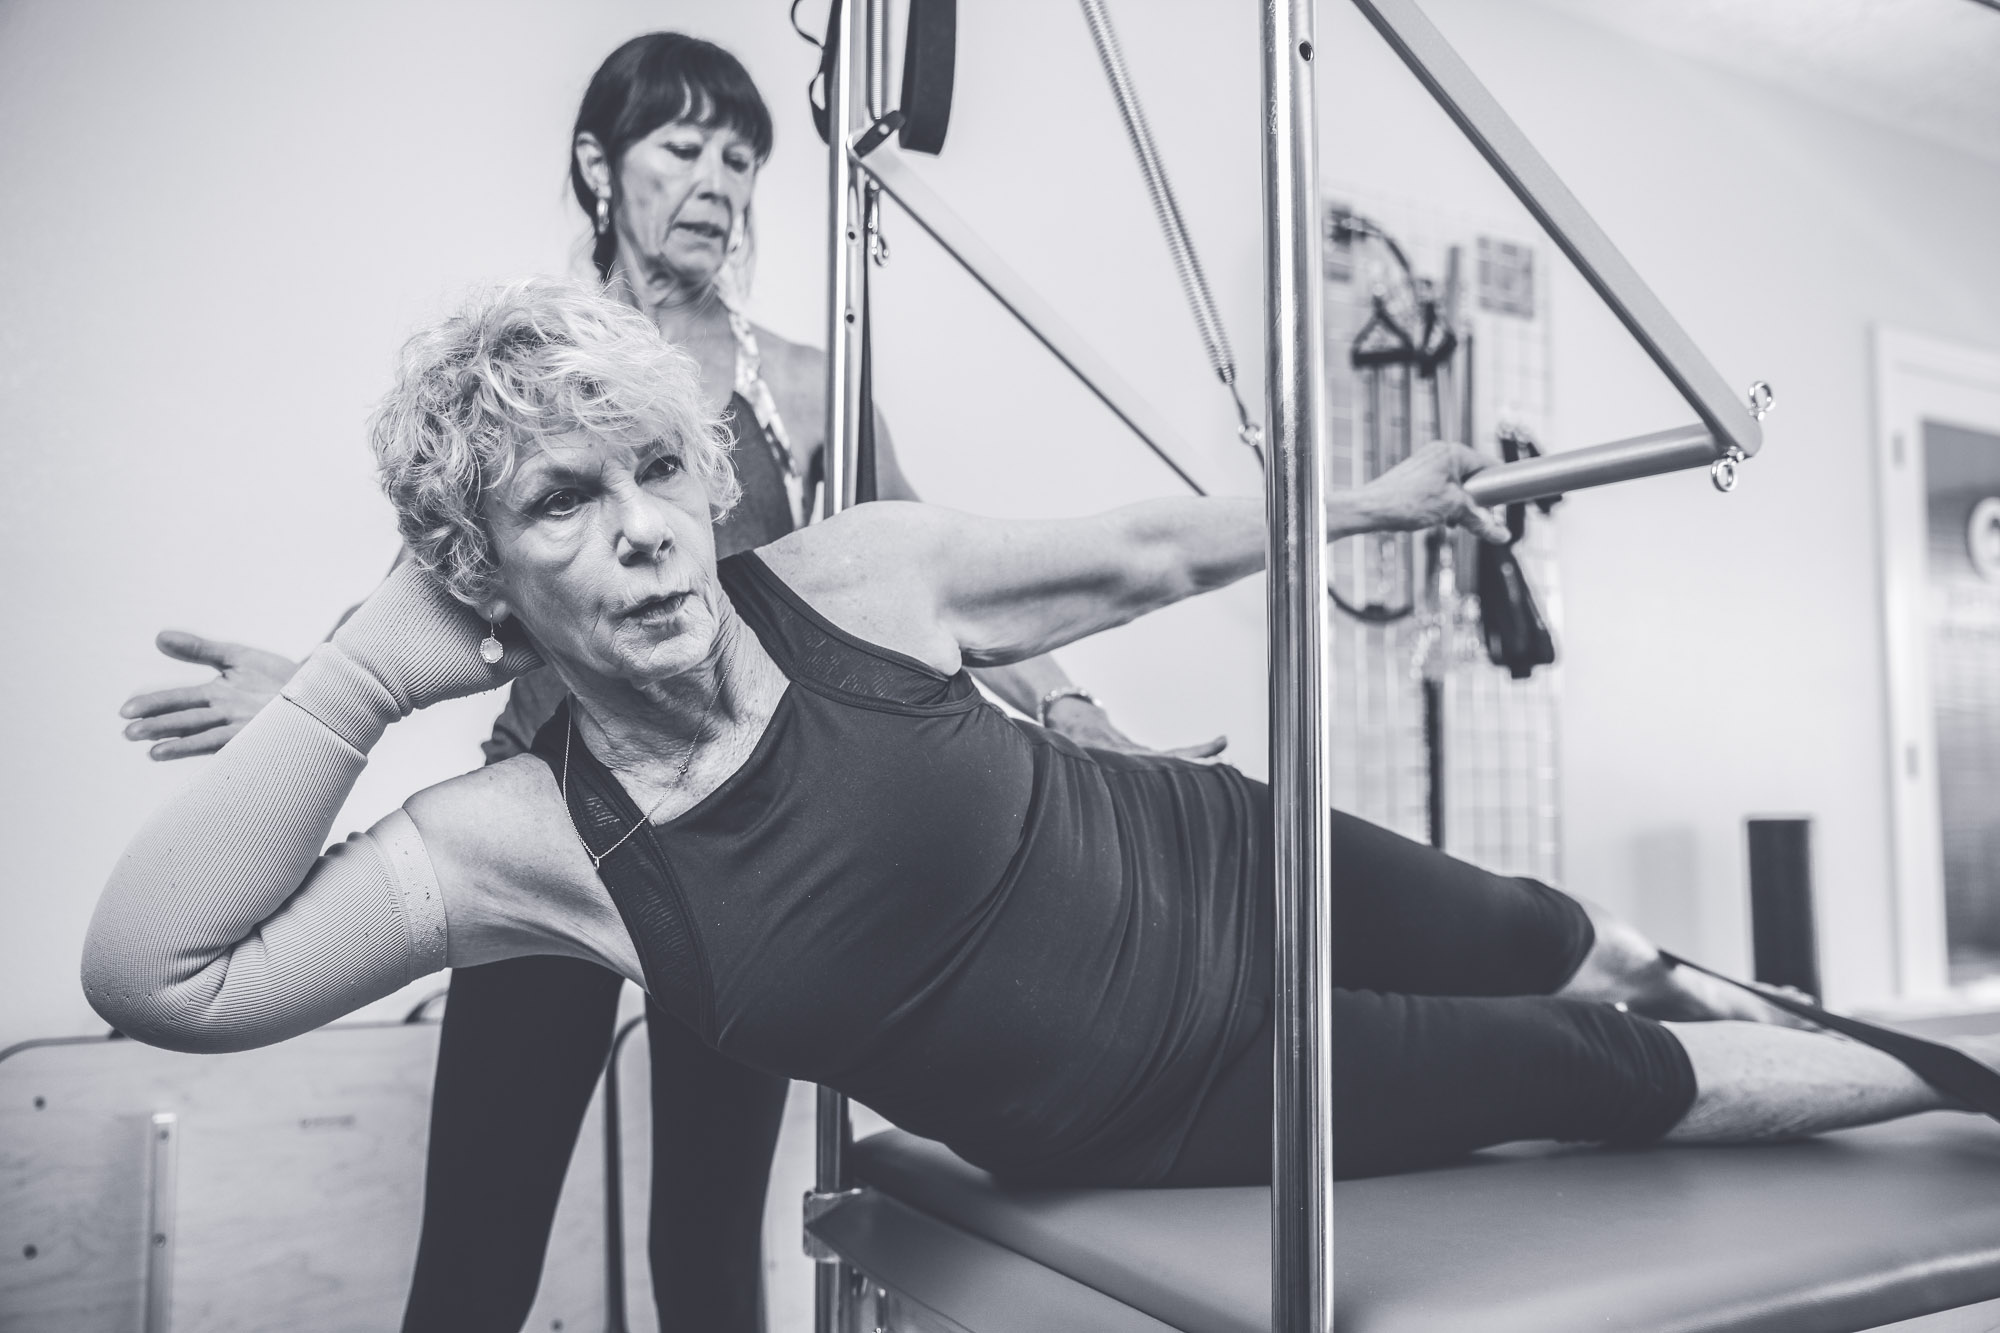 14006_Pilates_Evolved_011.jpg